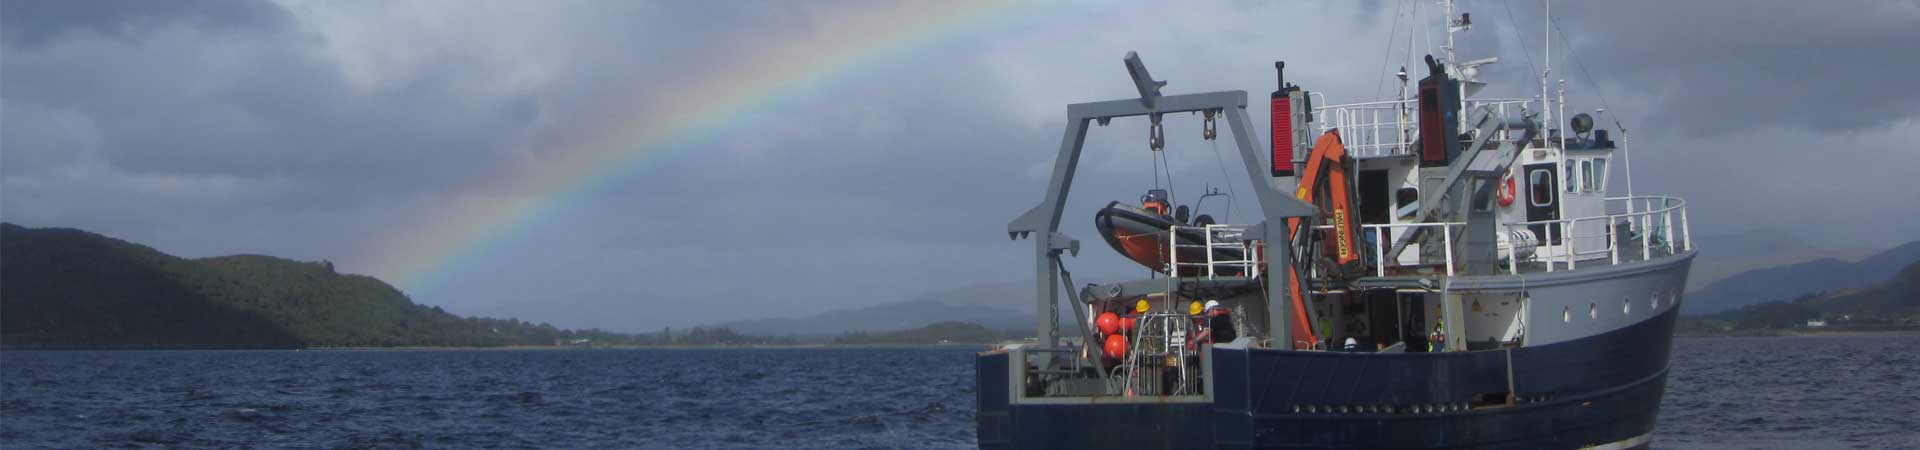 Image of SAMS research vessel with rainbow behind